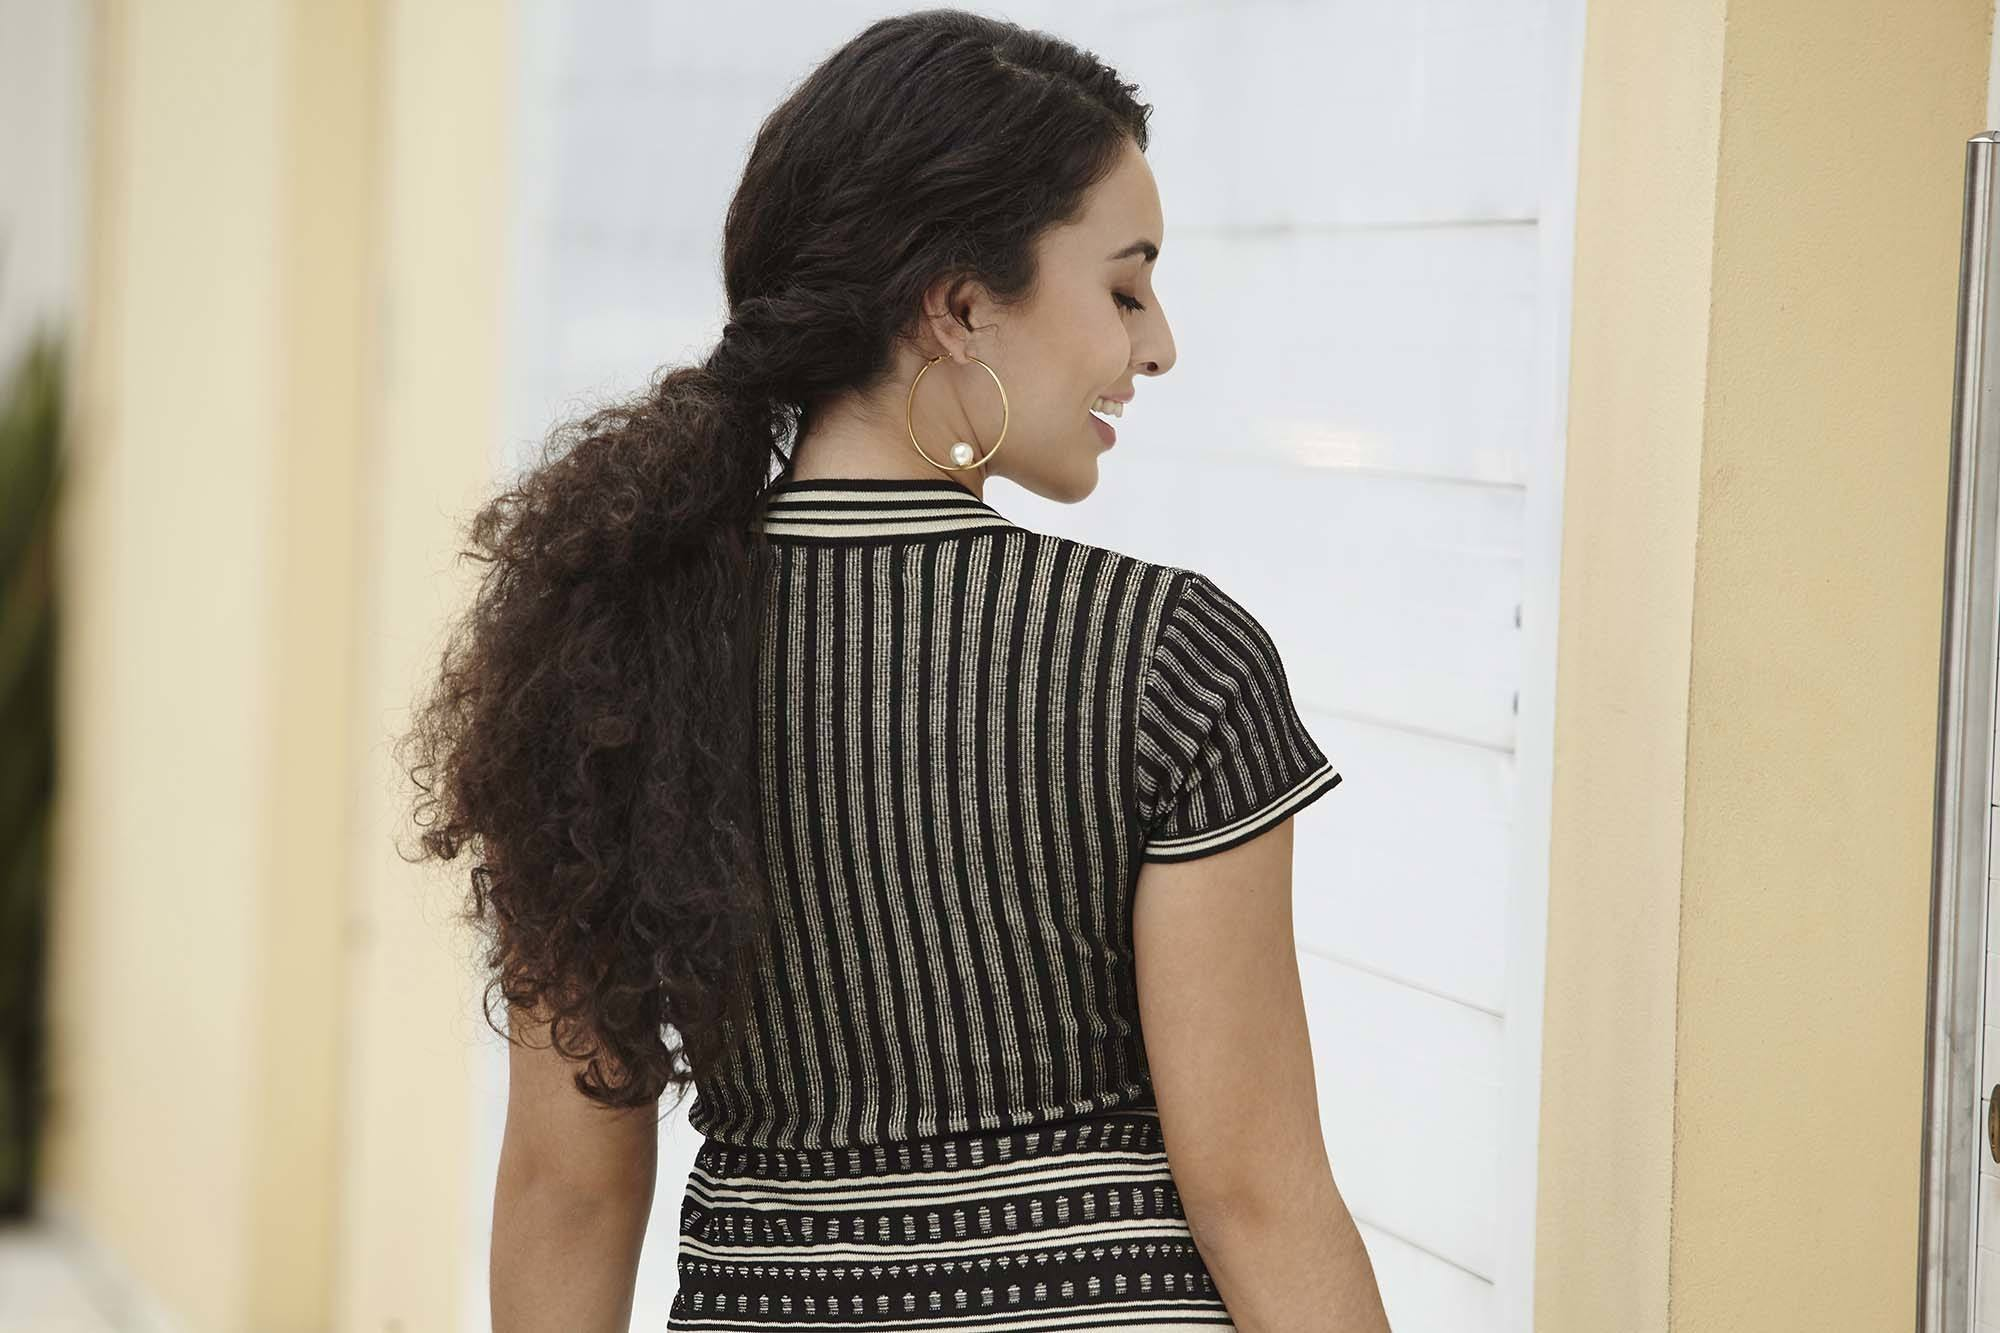 Long curly hair: Close up shot of a woman with long dark brown curly hair wearing striped dress and posing outside